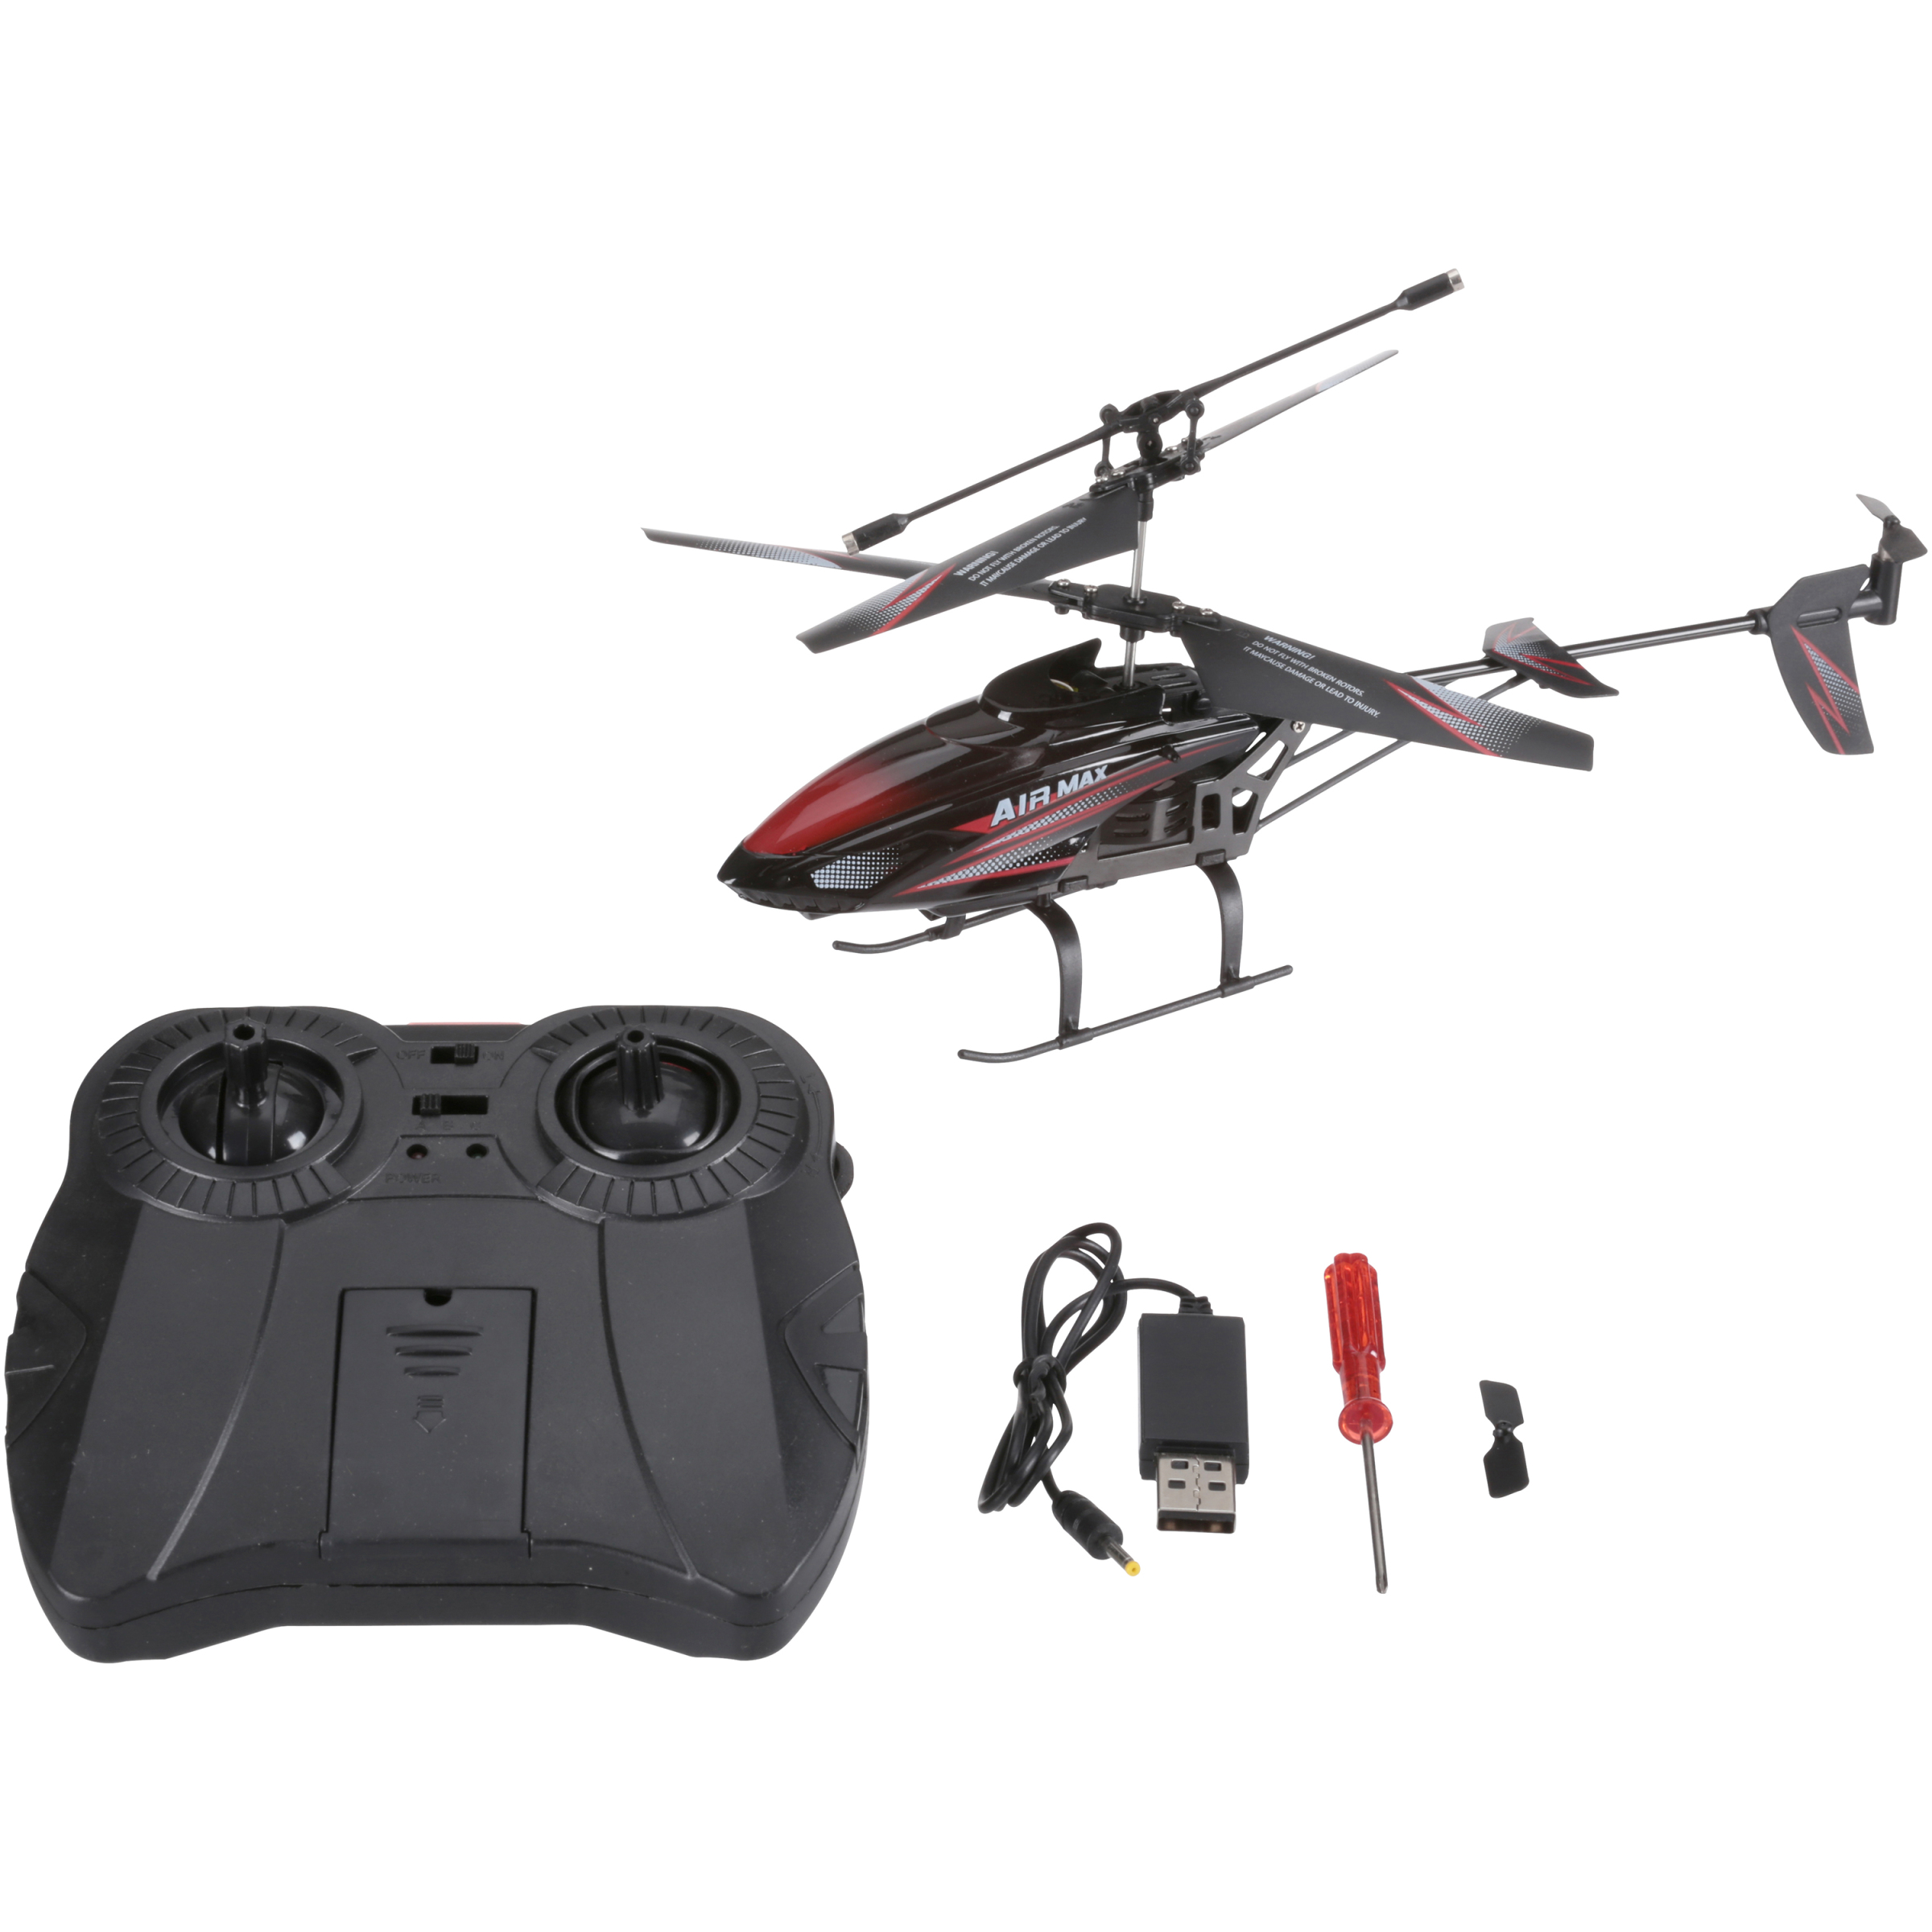 CX Model® 088 Toy Helicopter